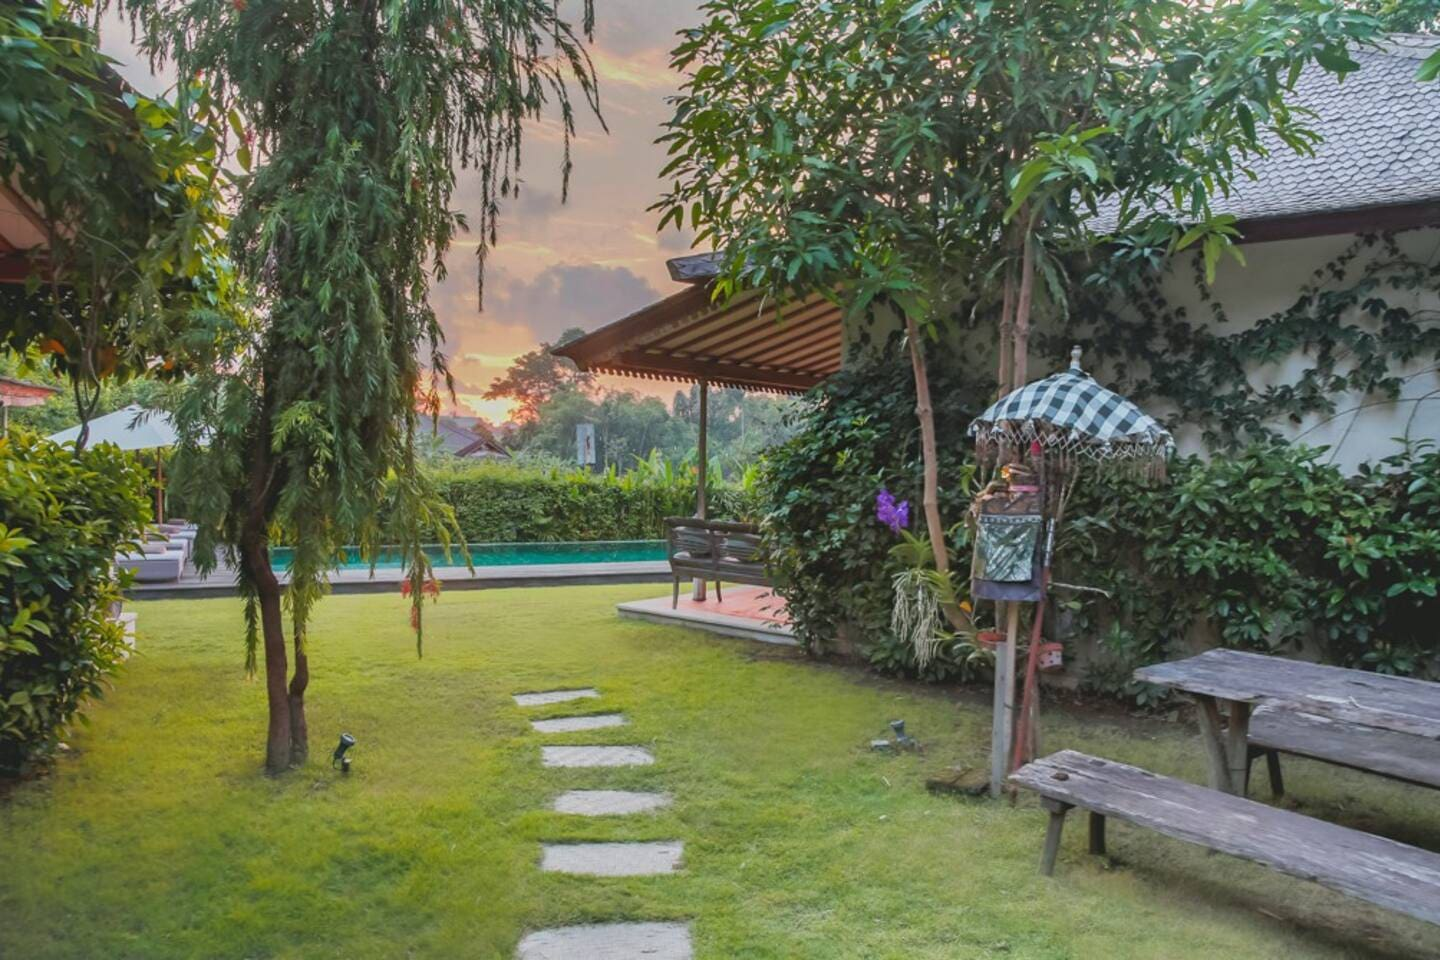 Garden & Pool Our spacious tropical garden is abundant with greenery, featuring a large swimming pool & lounge area for your pleasure. A natural oasis reveals a sweeping untouched ricefield view where you can witness.